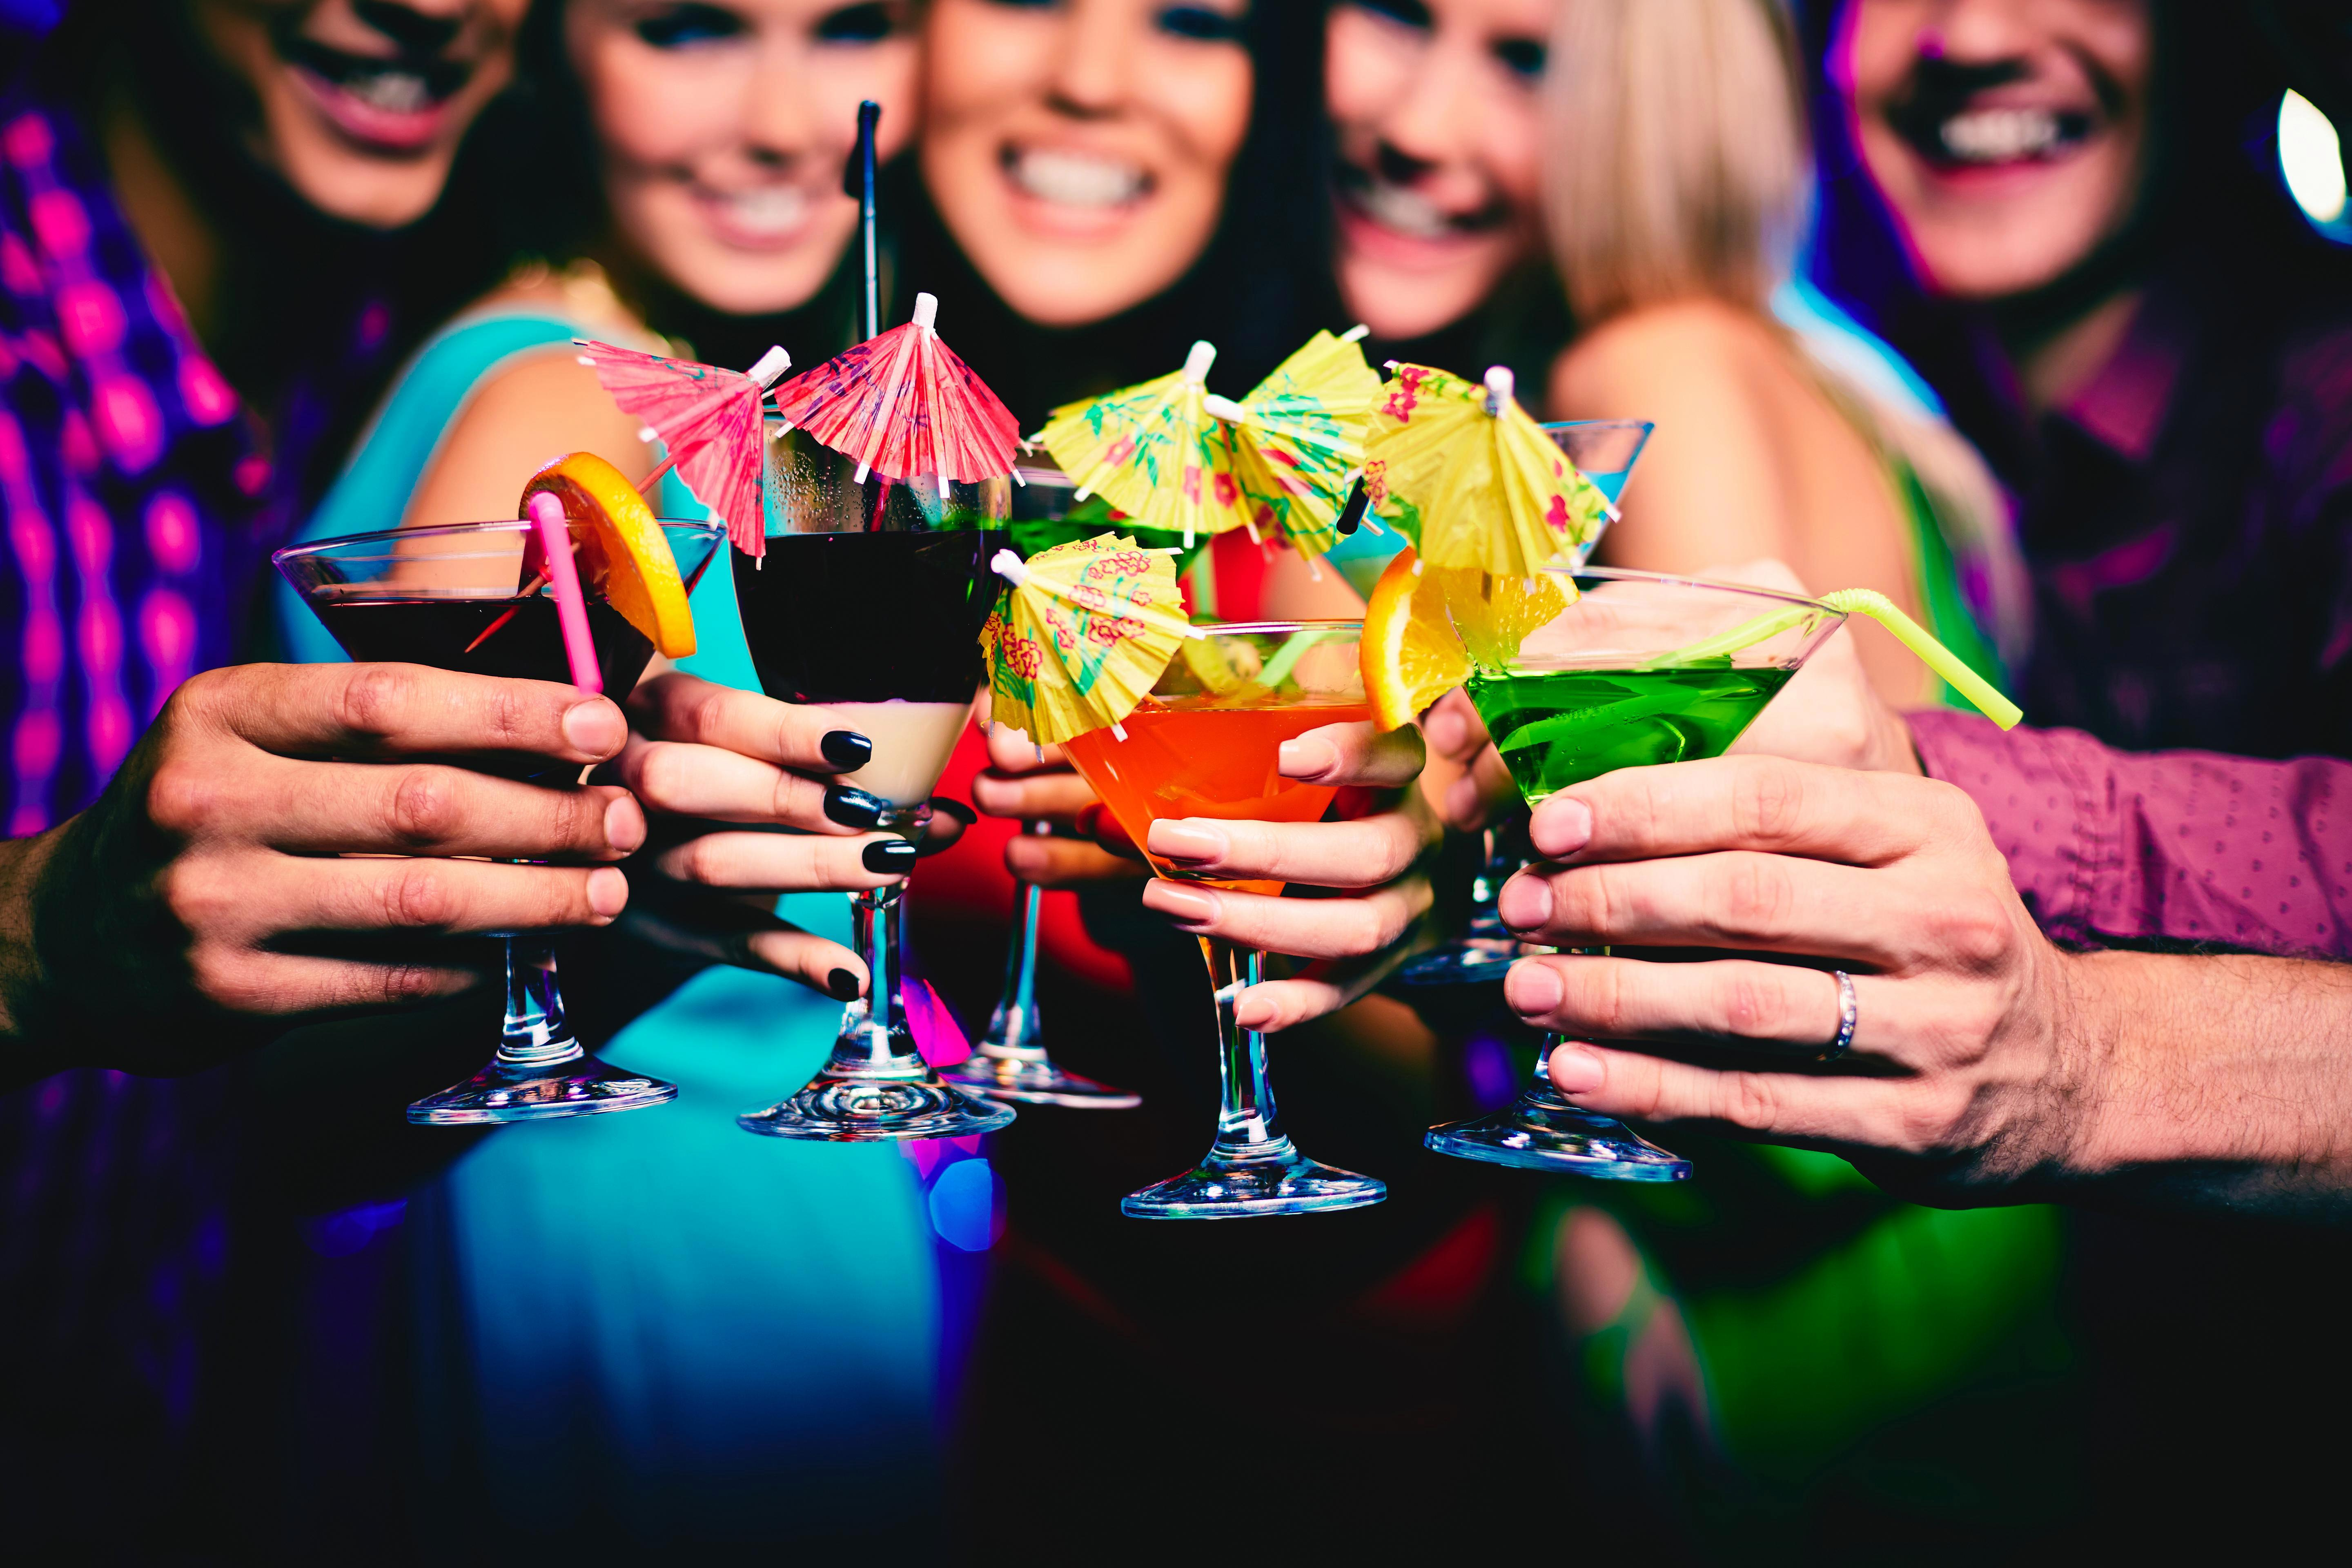 We test out products that will help keep your hangovers at bay so you can party away this Christmas